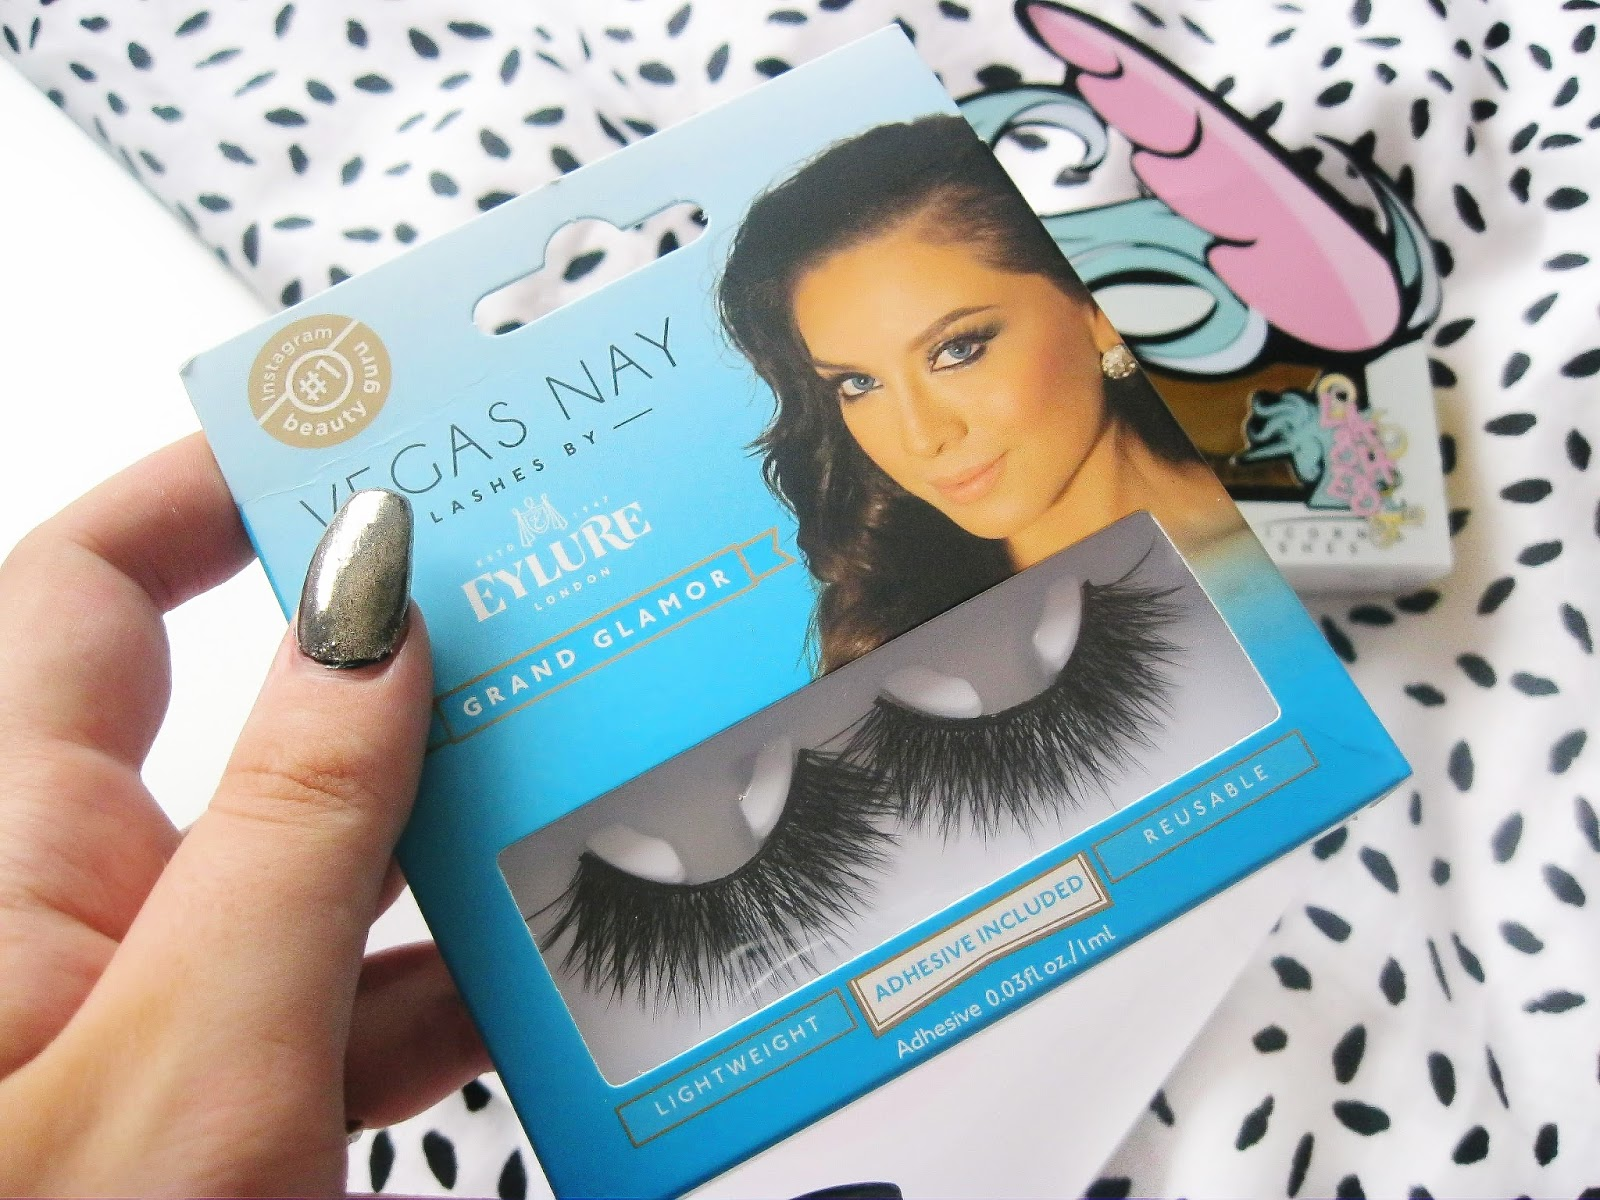 Eyelure eyelashes review Vegas nay grand glamour